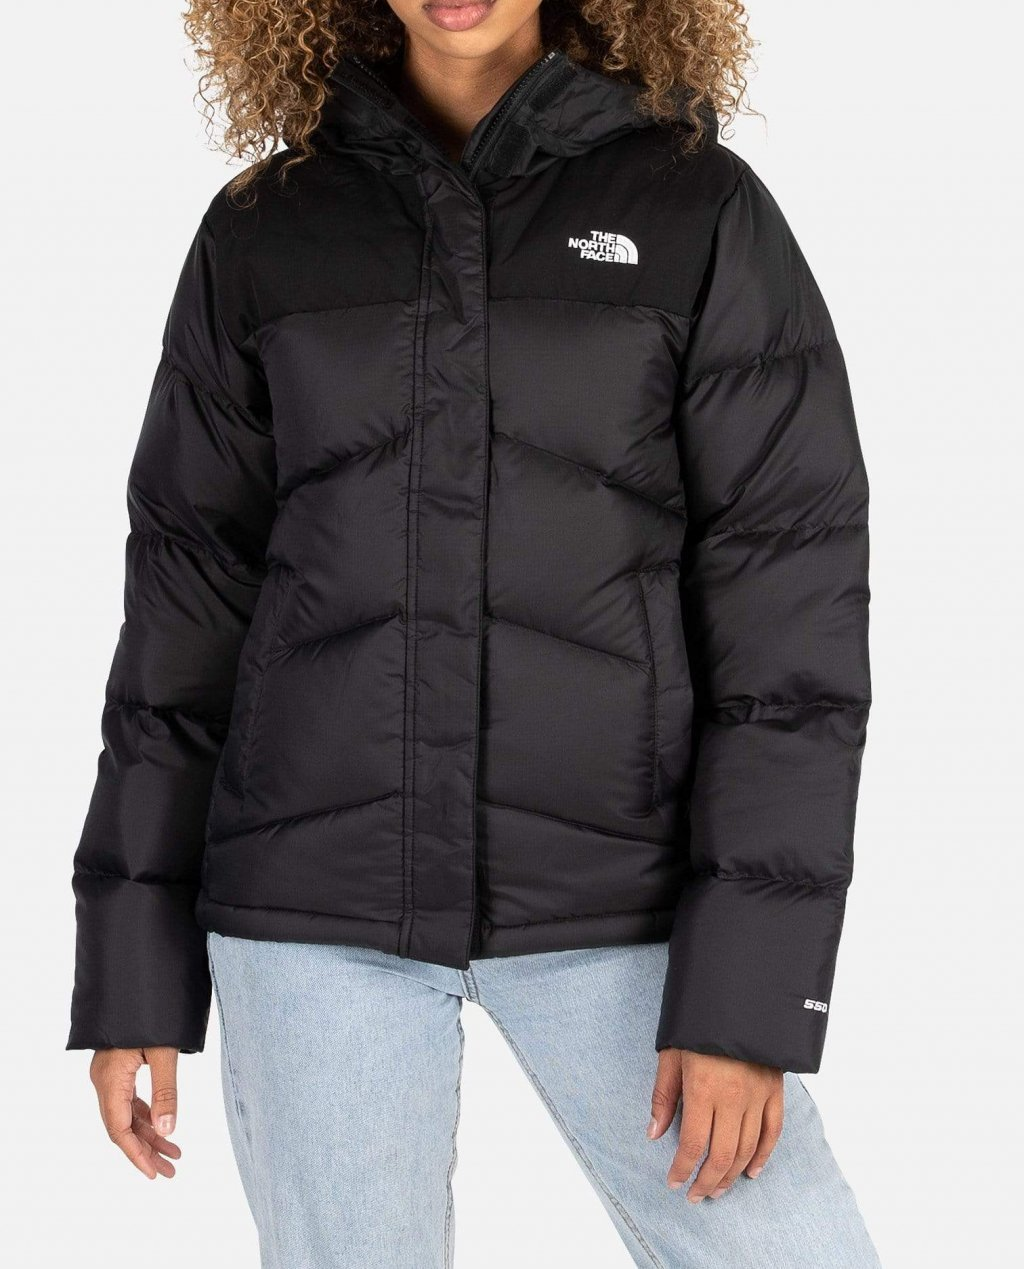 North Face Balham insulated jacket